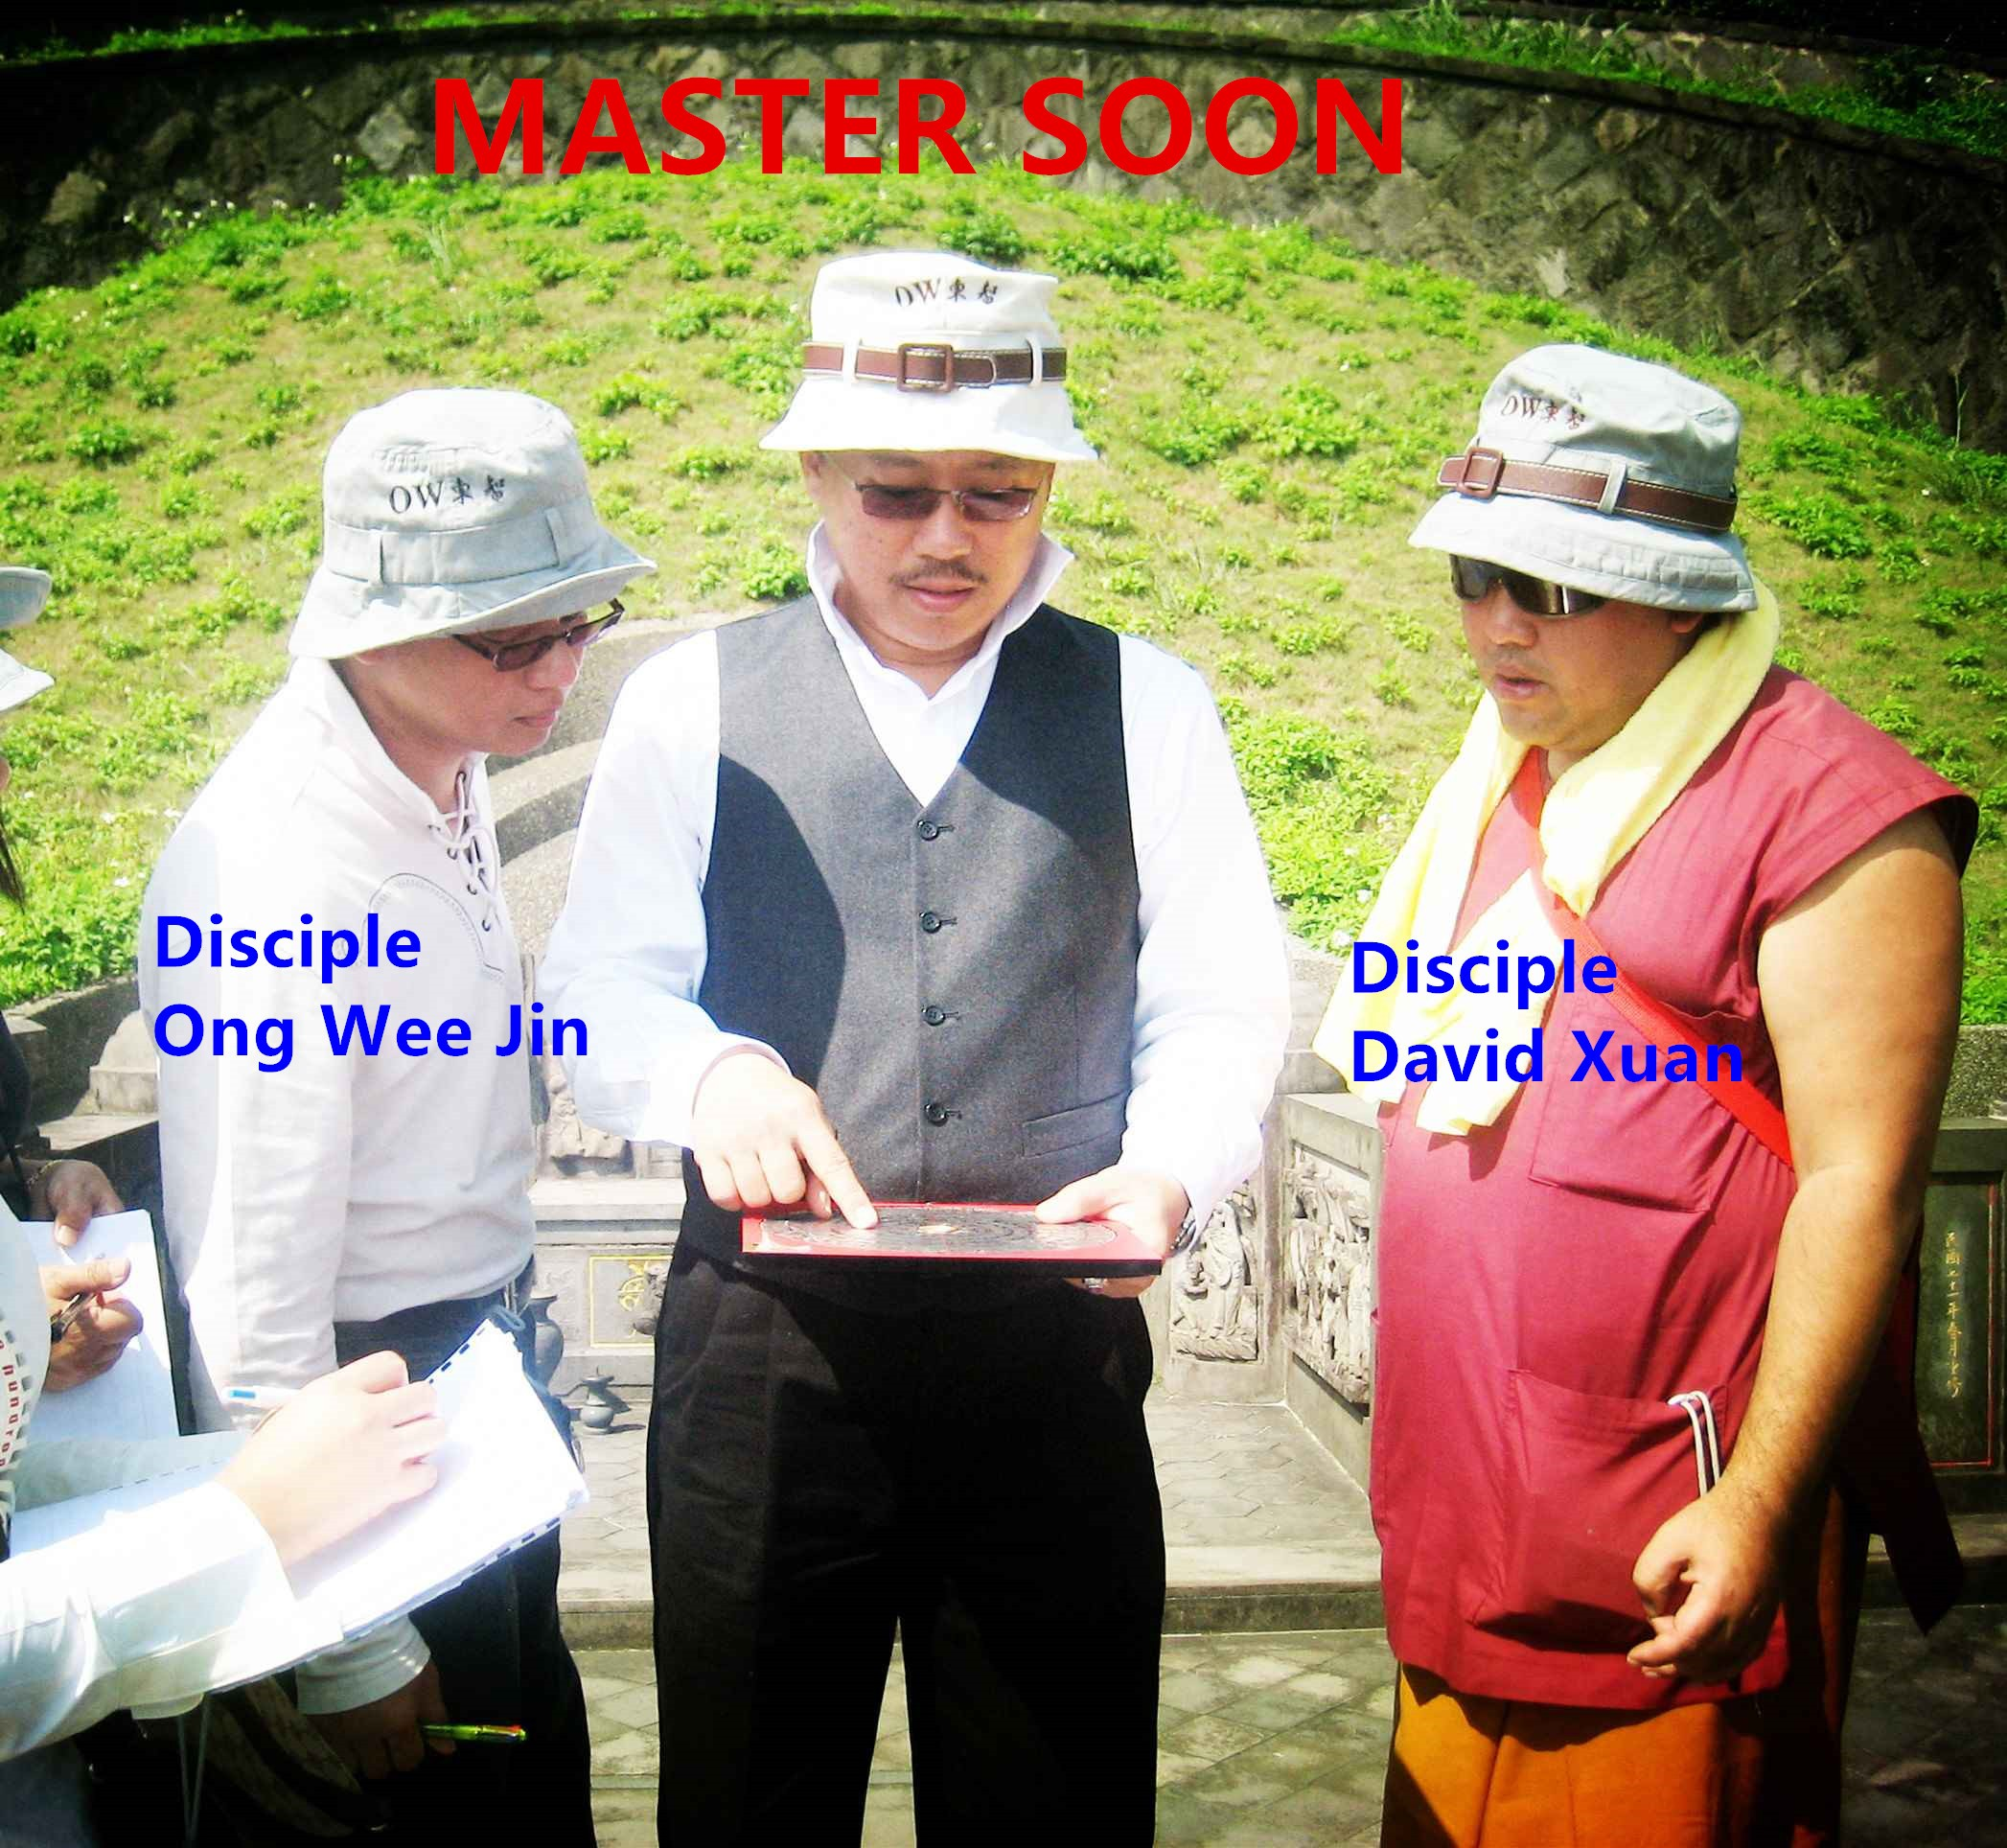 Master Soon & Disciple David Xuan & Ong Wee Jin